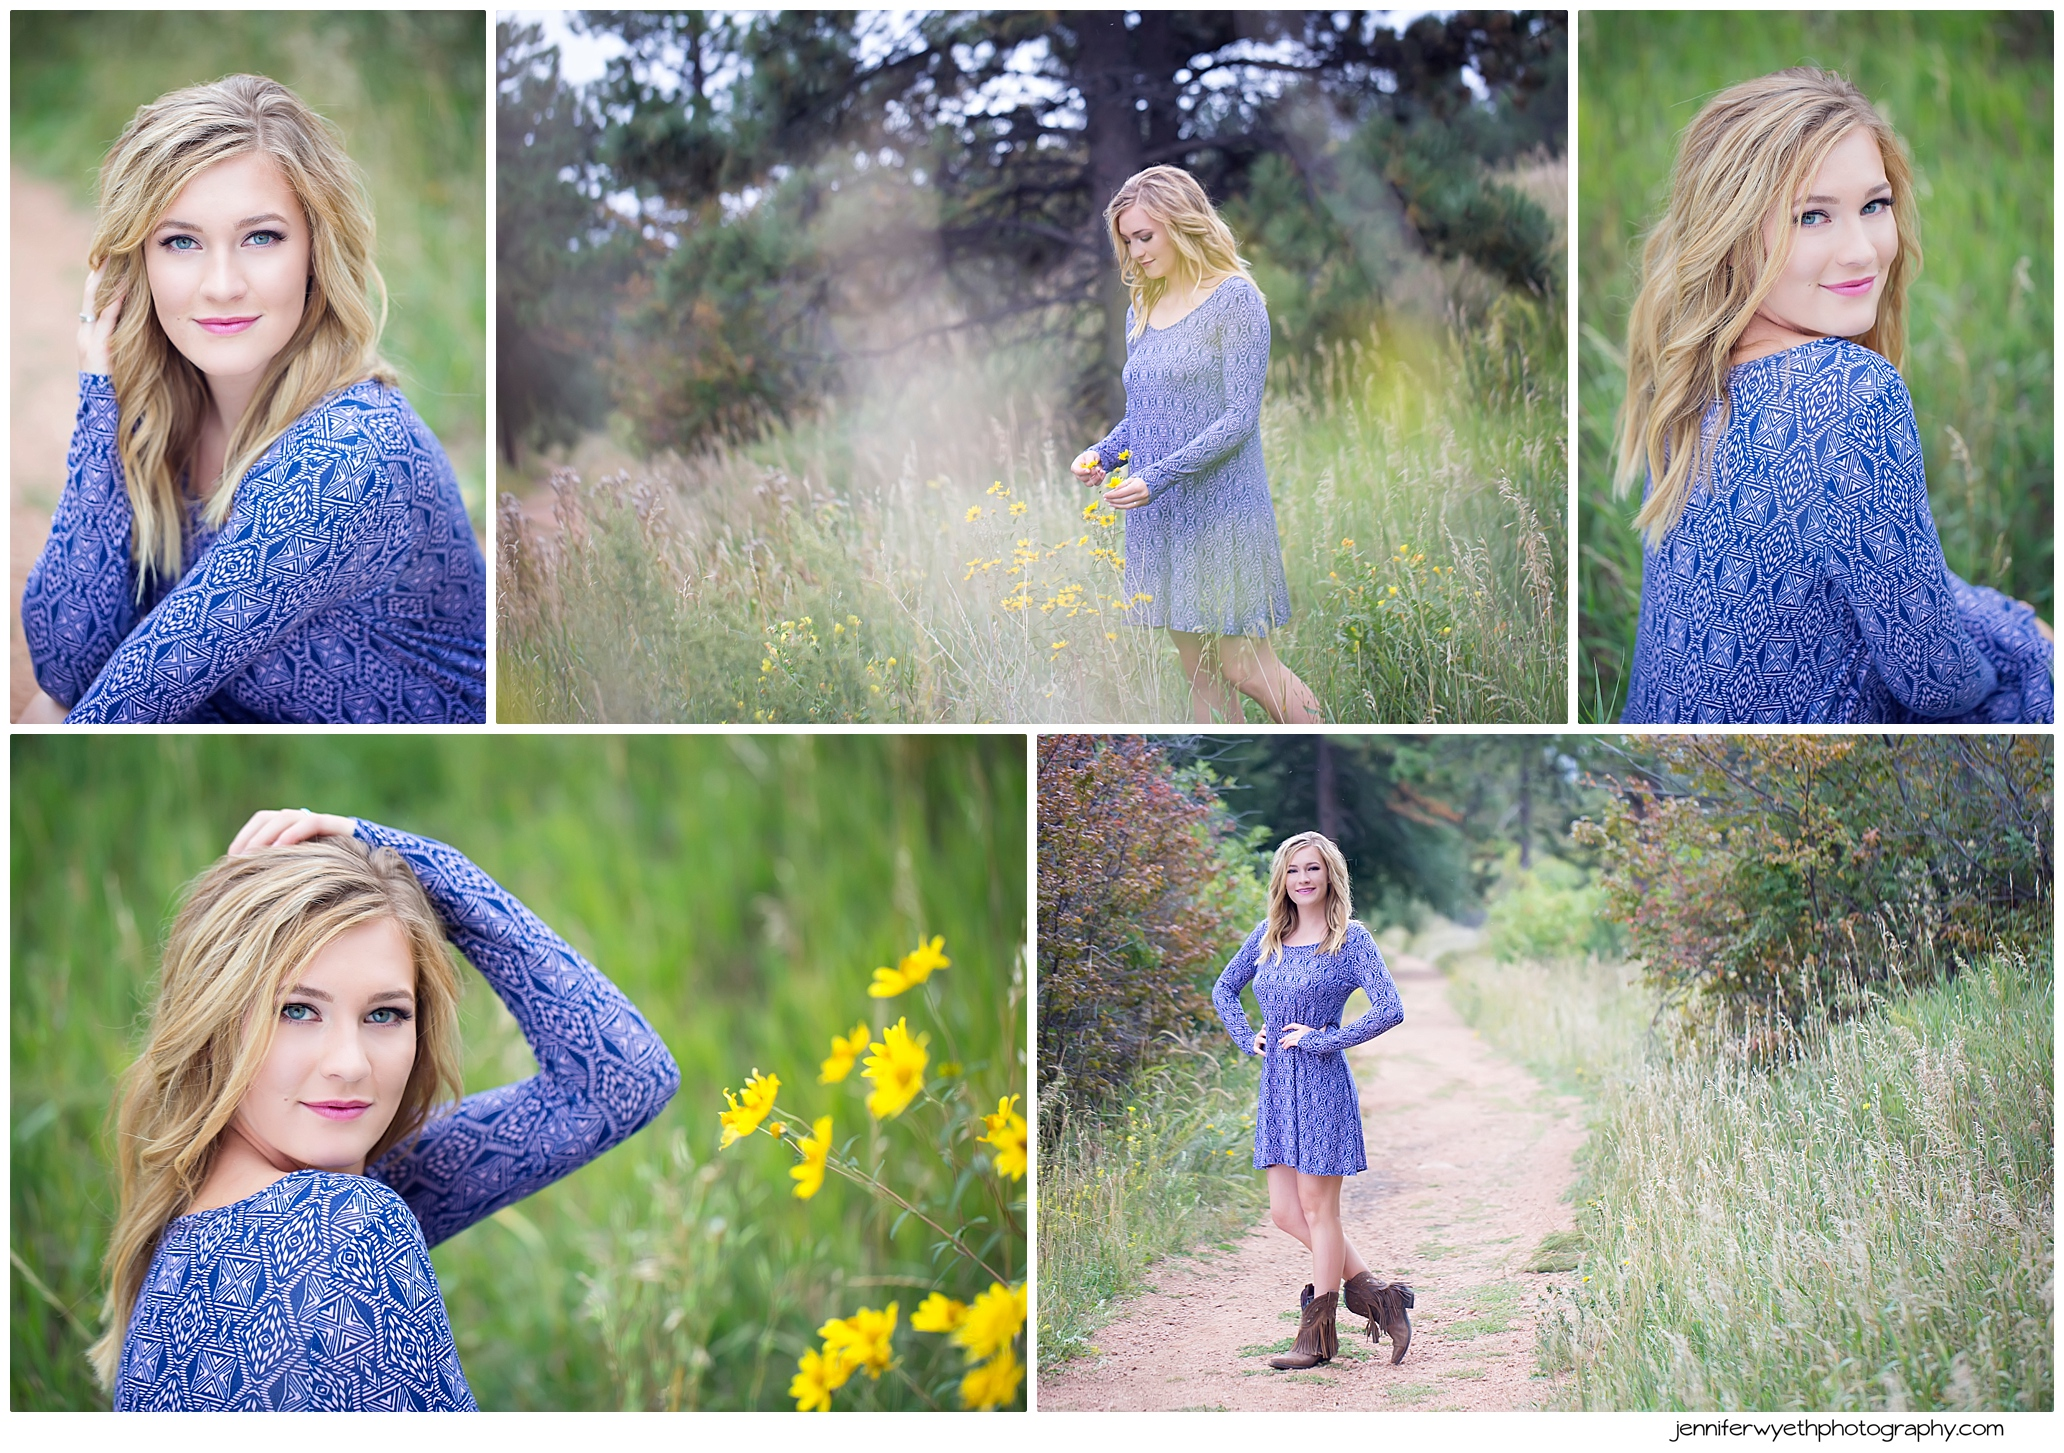 Jennifer-Wyeth-photography-senior-pictures-colorado-springs-photographer_0183.jpg